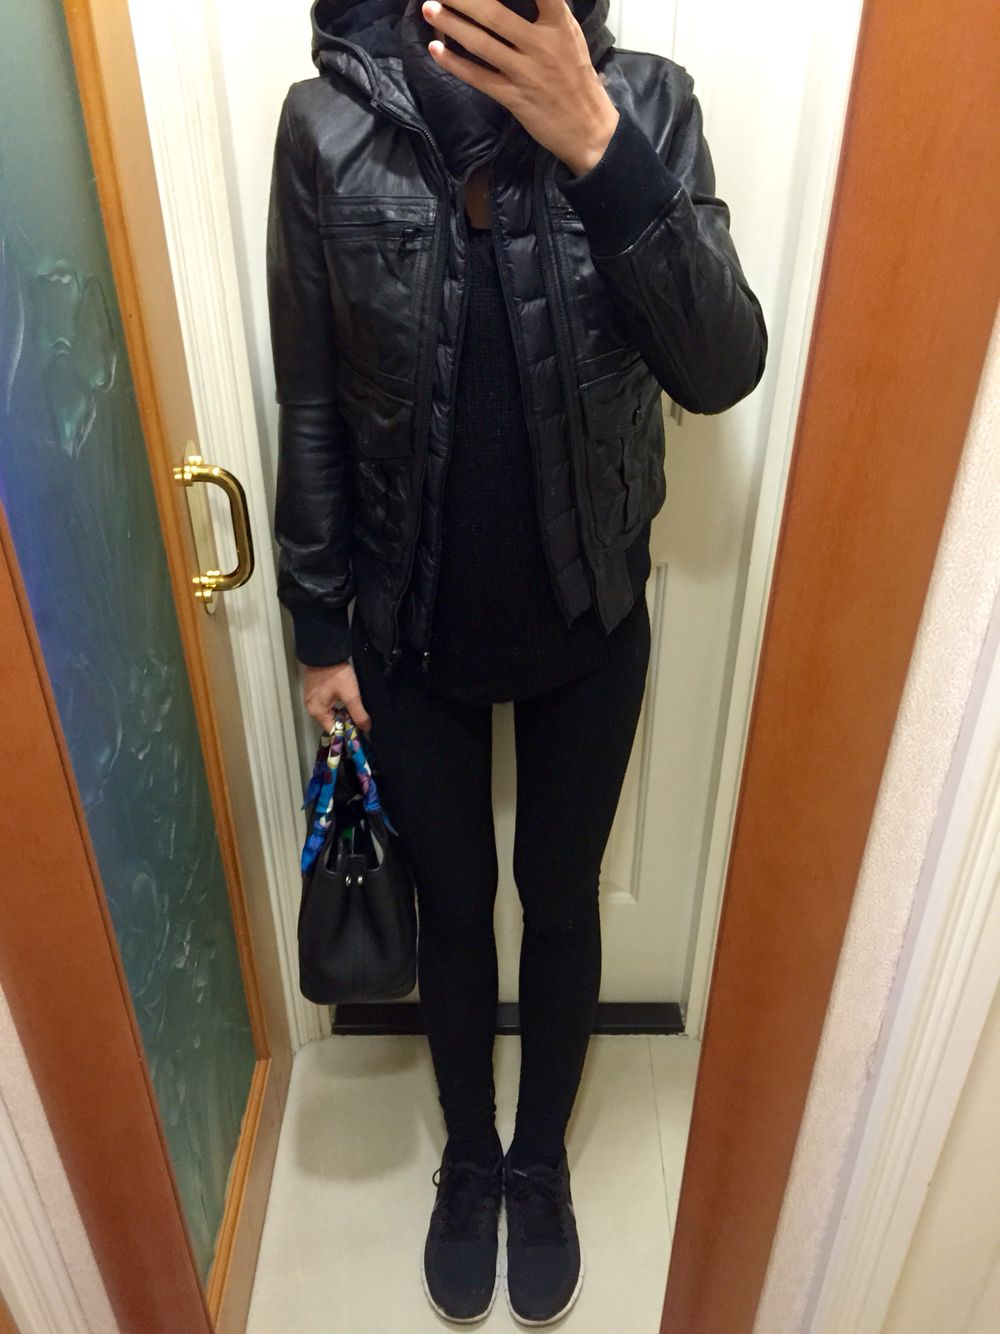 Leather jacket uniqlo - Hysteric Glamour Leather Jacket Uniqlo Down Vest H M Knitted Tunic Juicy Couture Leggings